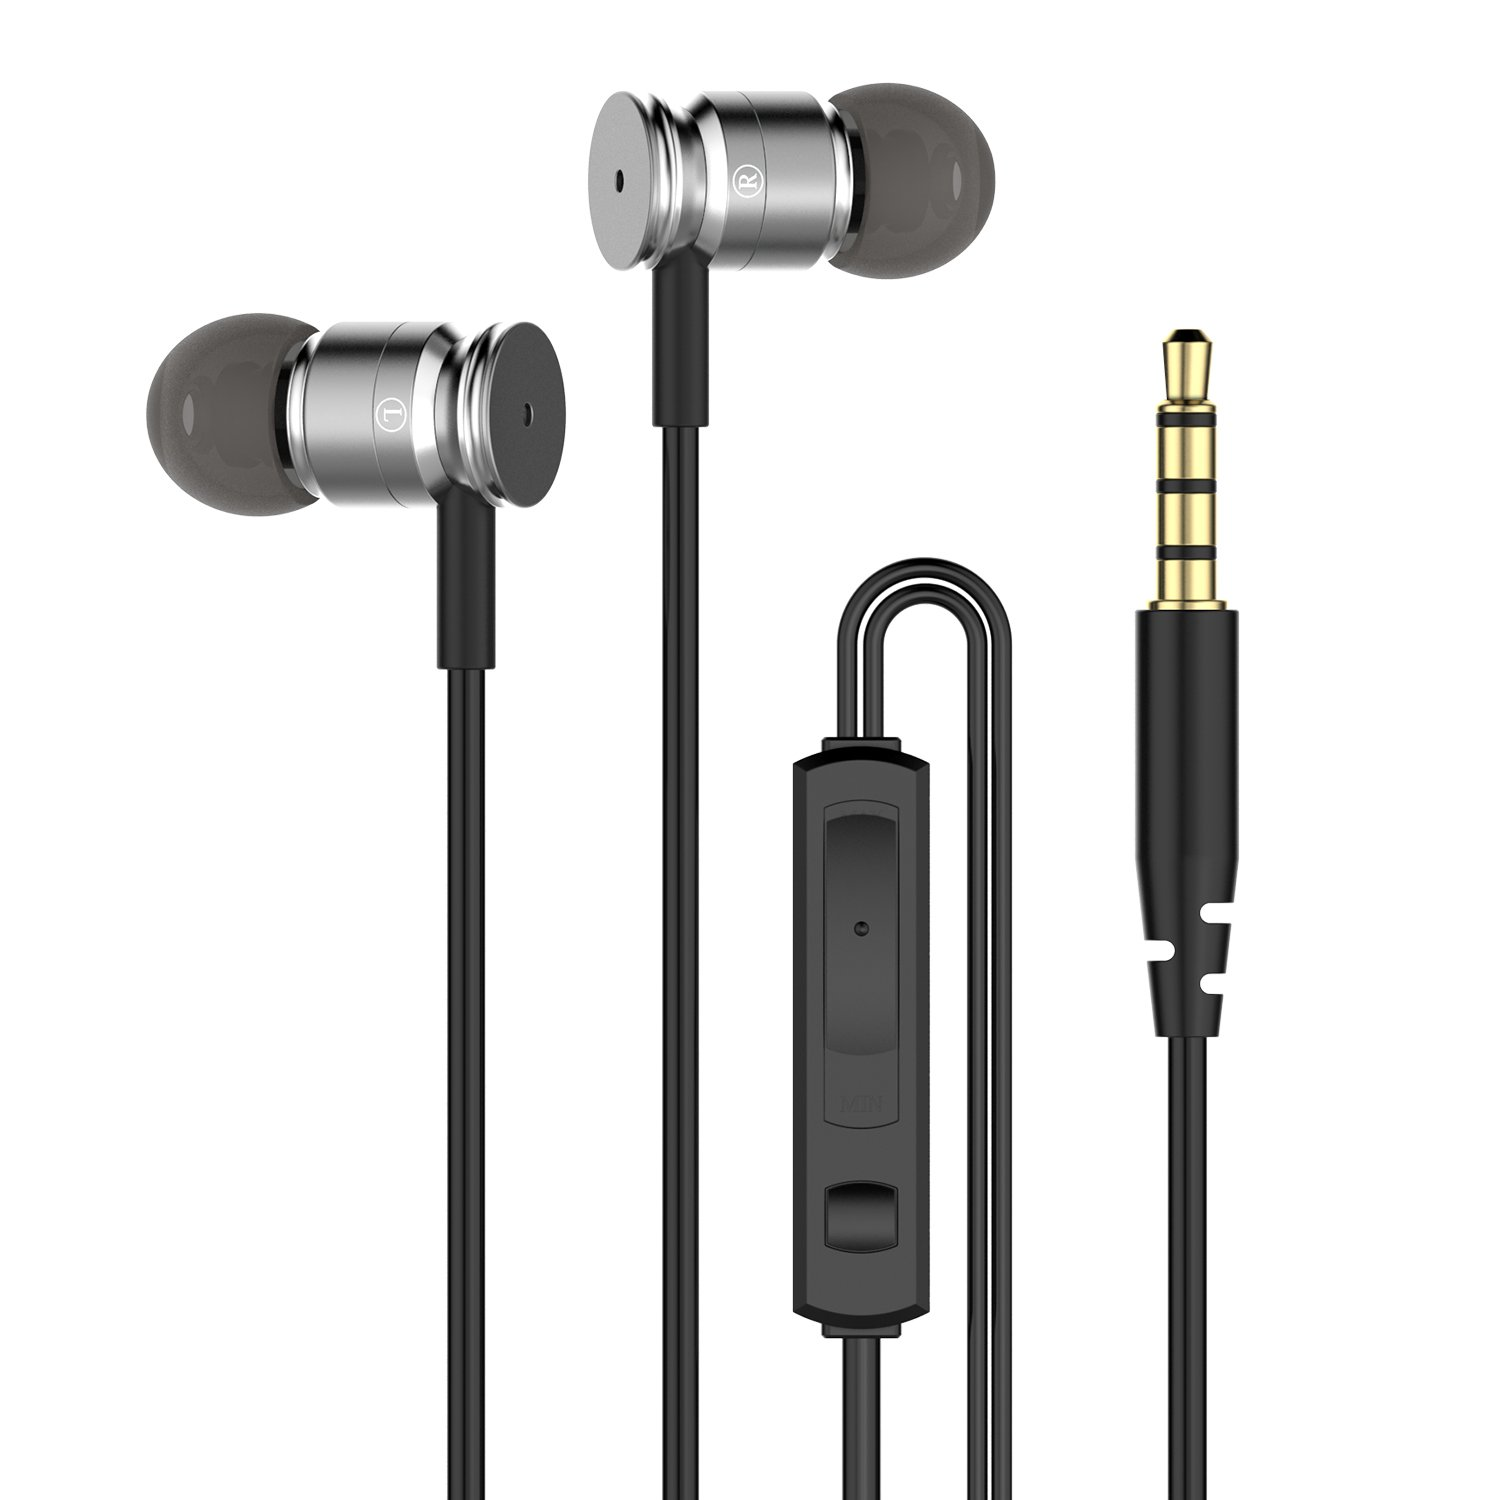 Q-YEE Earbud Headphones,Bass Stereo Earphones with Microphone and Remote for Running Jogging Gym Grey